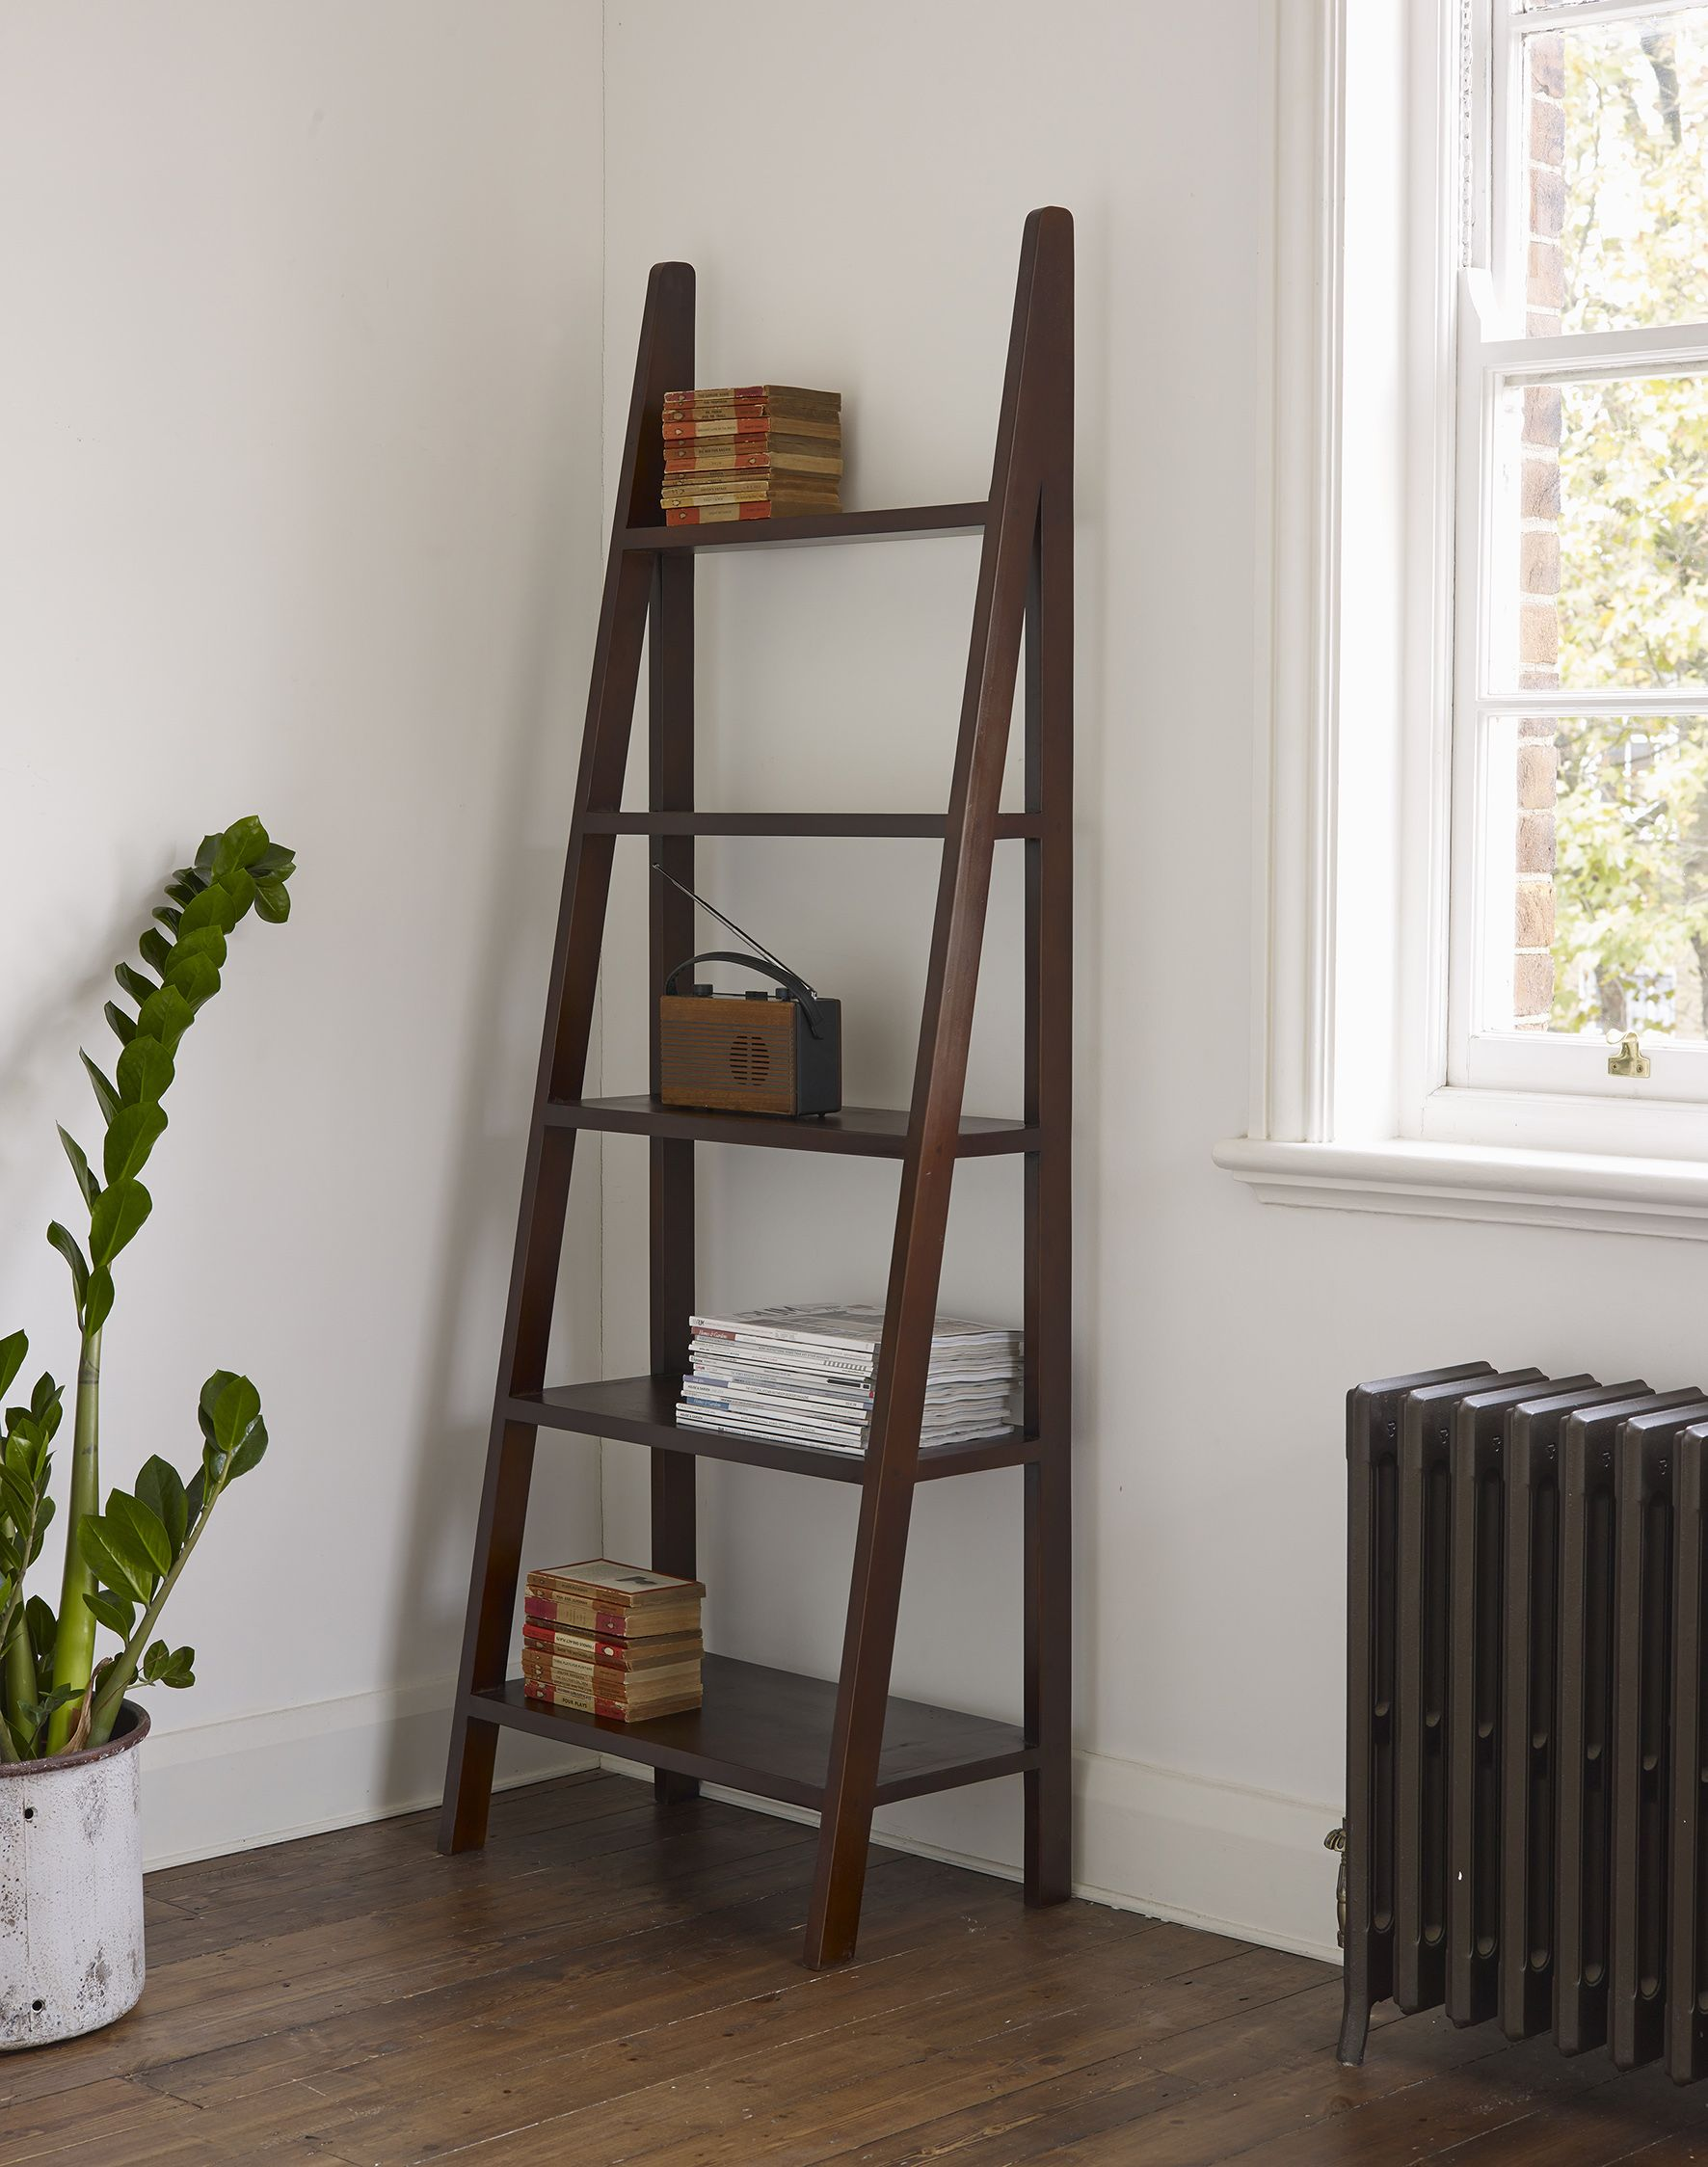 Our Seba Ladders Are Handcrafted In Indonesia From Solid Indonesian Teak With Solid Wood Inners To Ensure Long Wooden Bookcase Ladder Bookshelf Ladder Bookcase